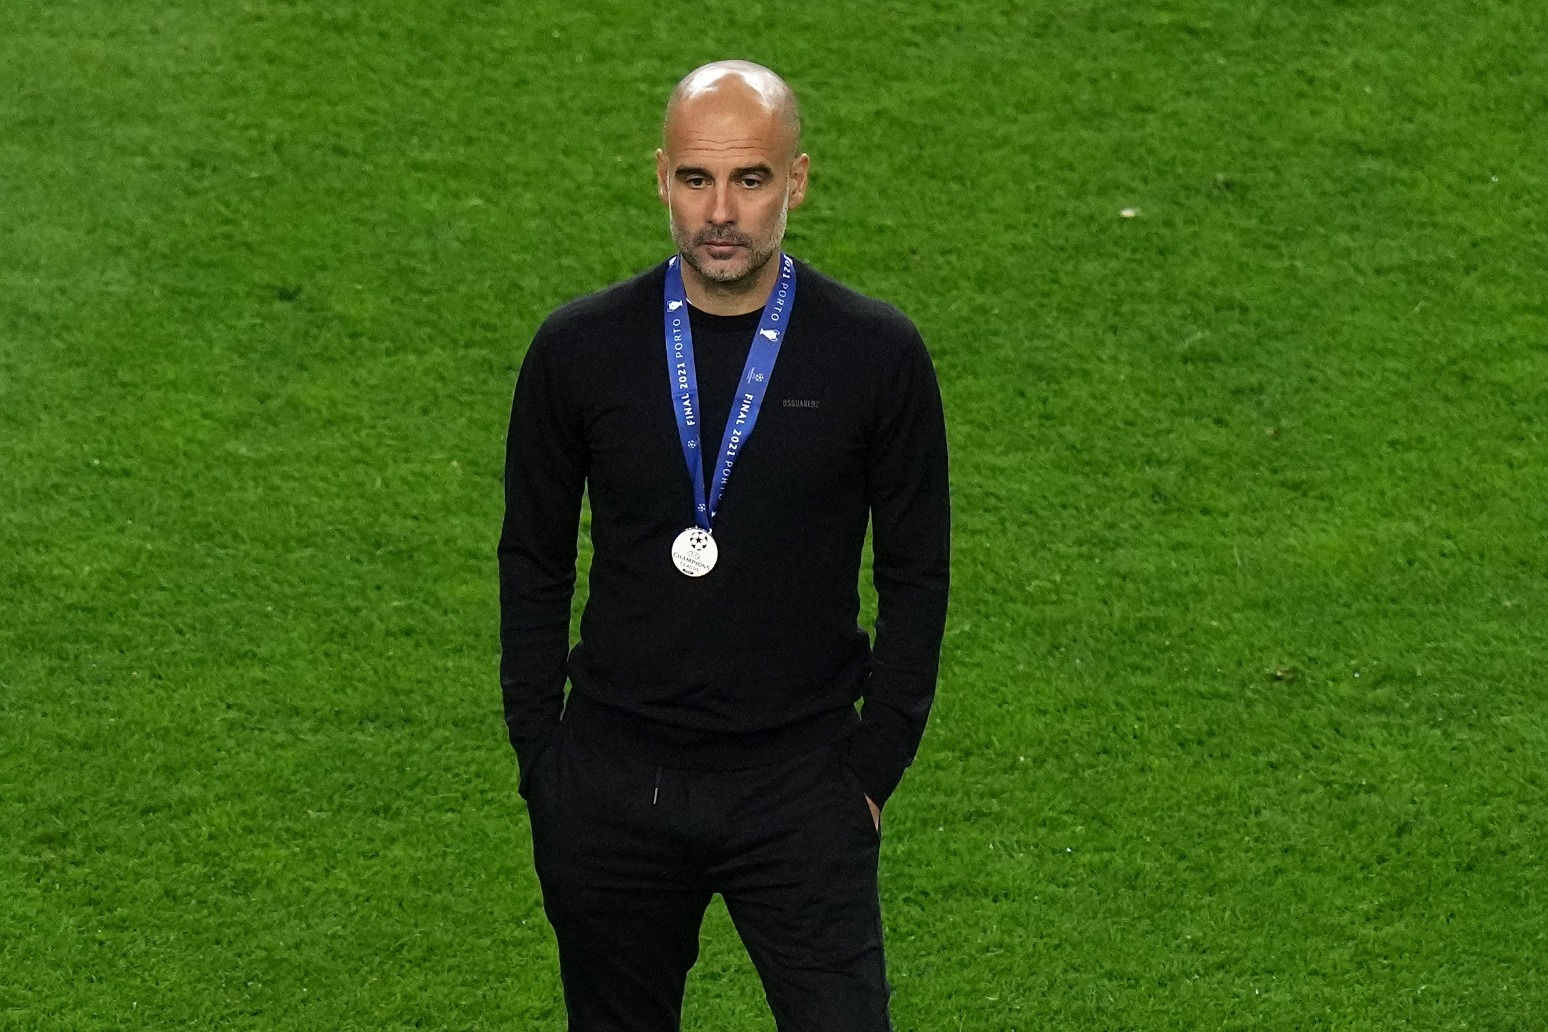 Pep Guardiola insists Manchester City will bounce back stronger from final loss